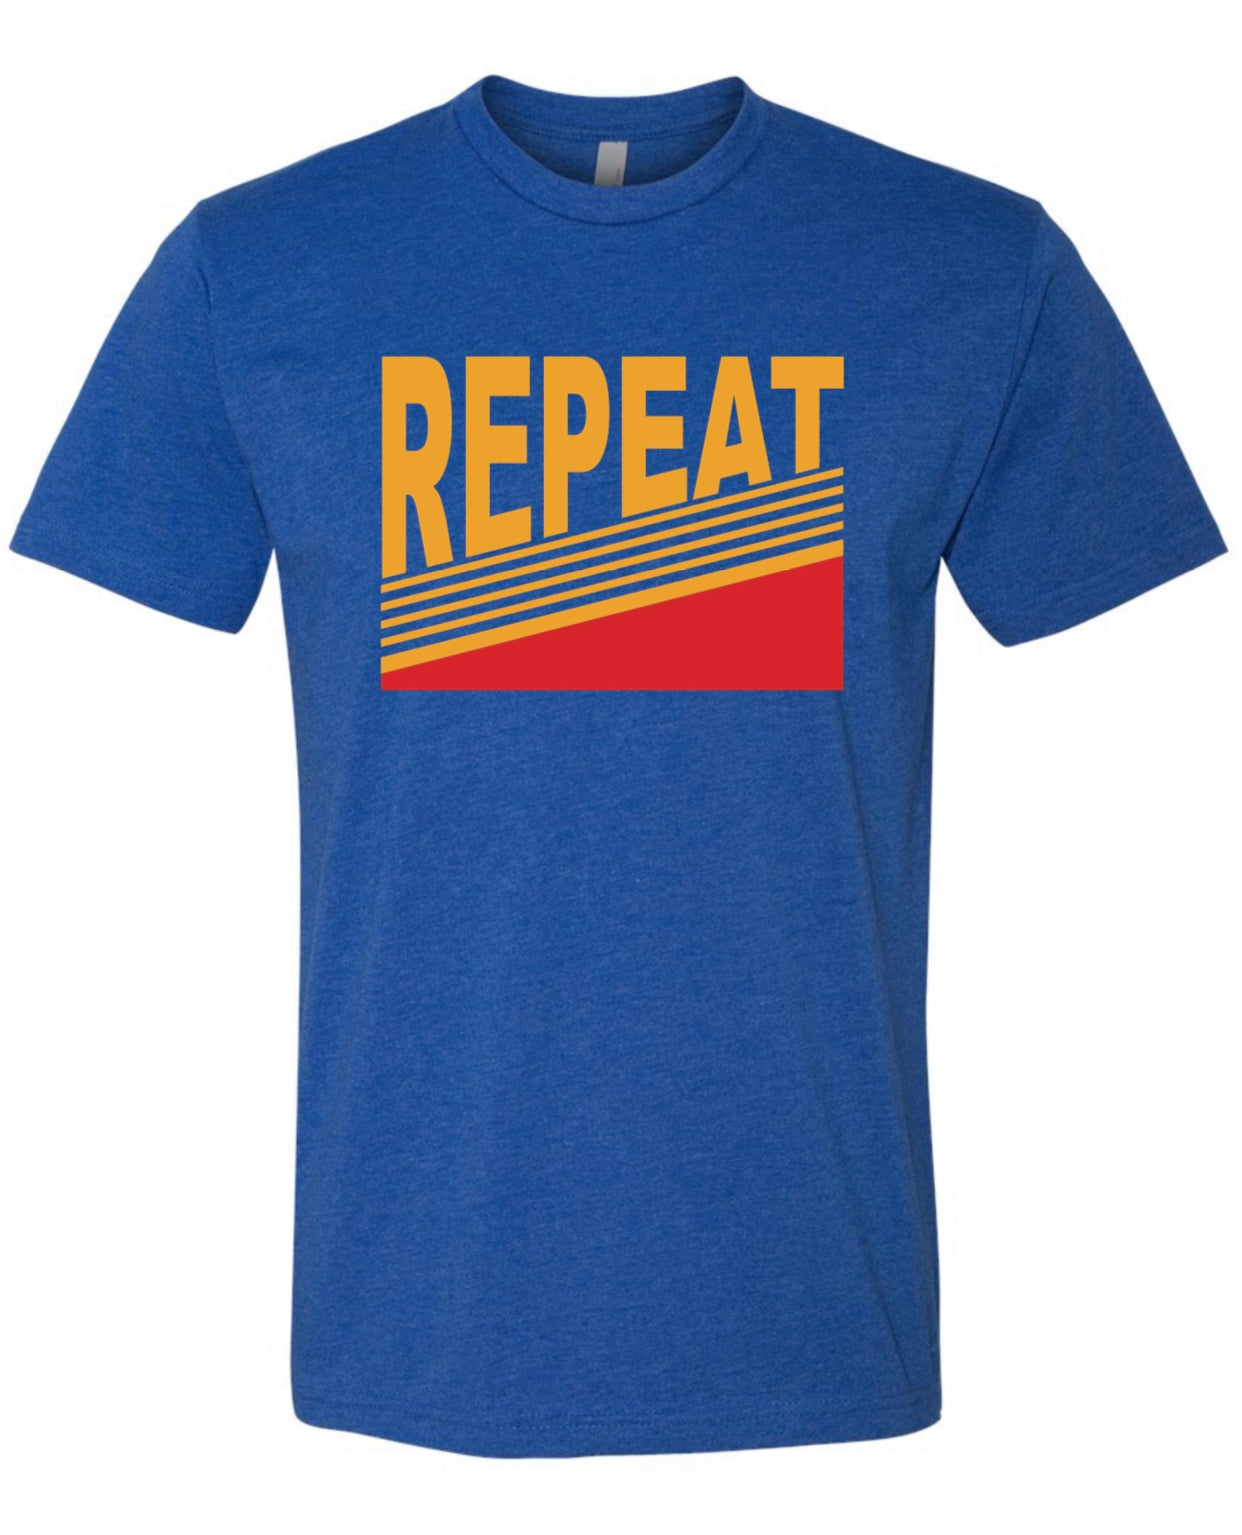 Blue REPEAT T